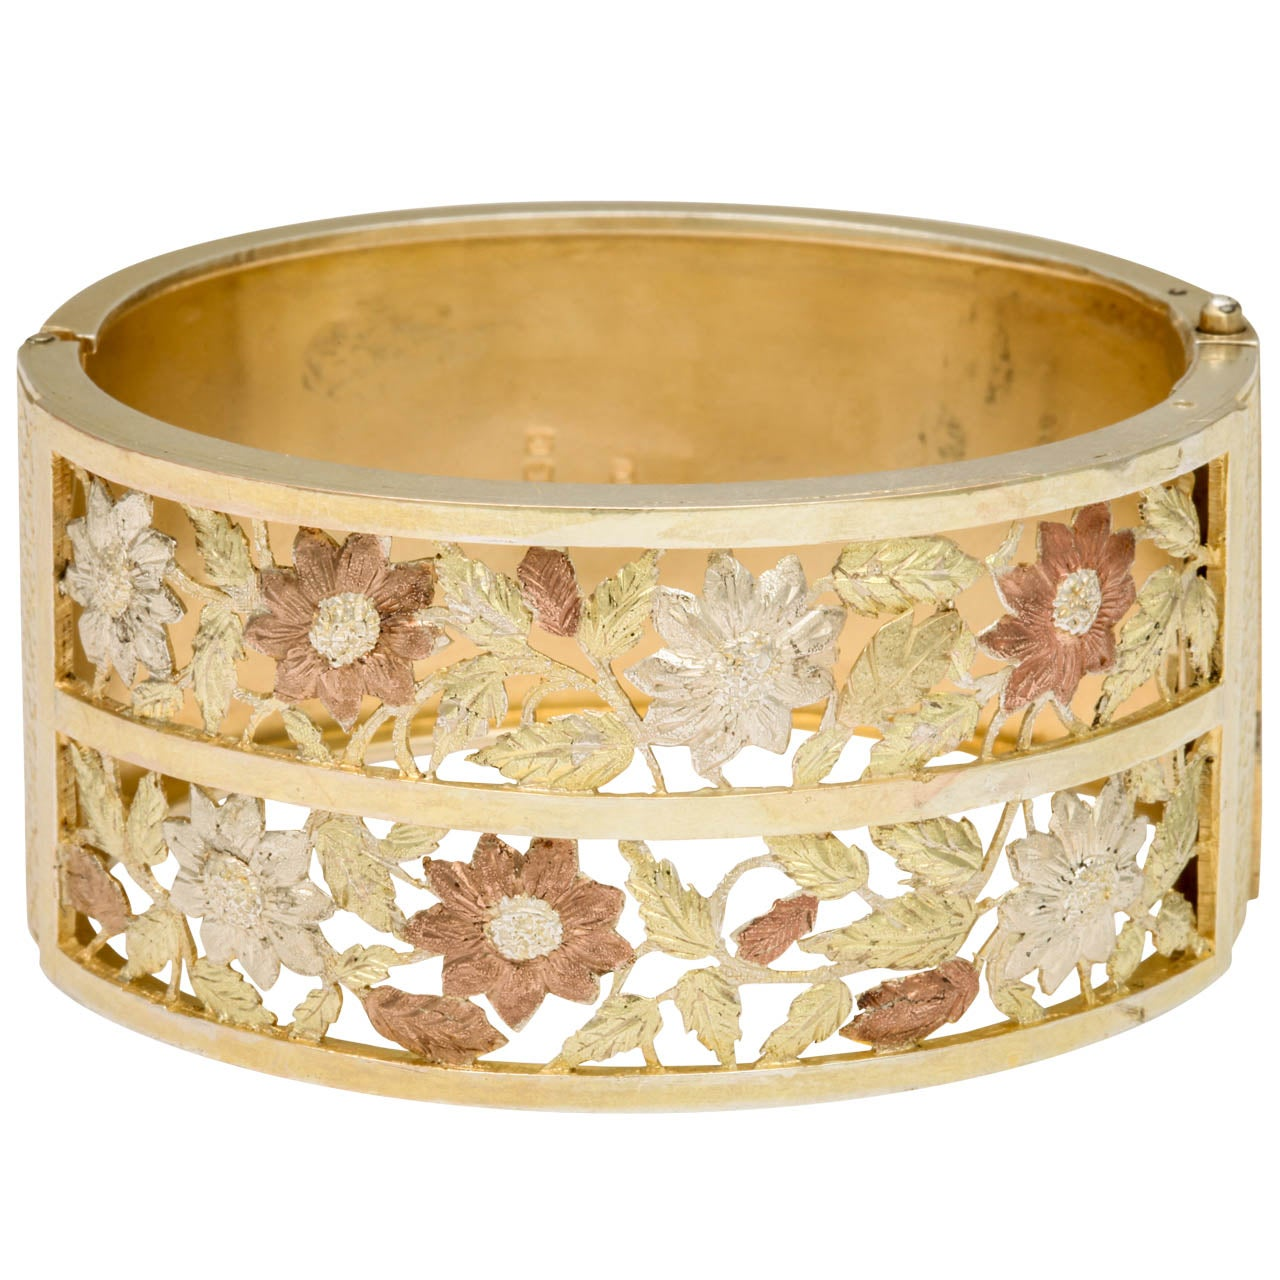 Golden hues fill this bracelet with the intensity of midday sun. Two rows of flowers, with realistic engraving, have been cut from the silver and play among the vines. Crosshatched engraving borders the bracelet sides. The bracelet is English c.